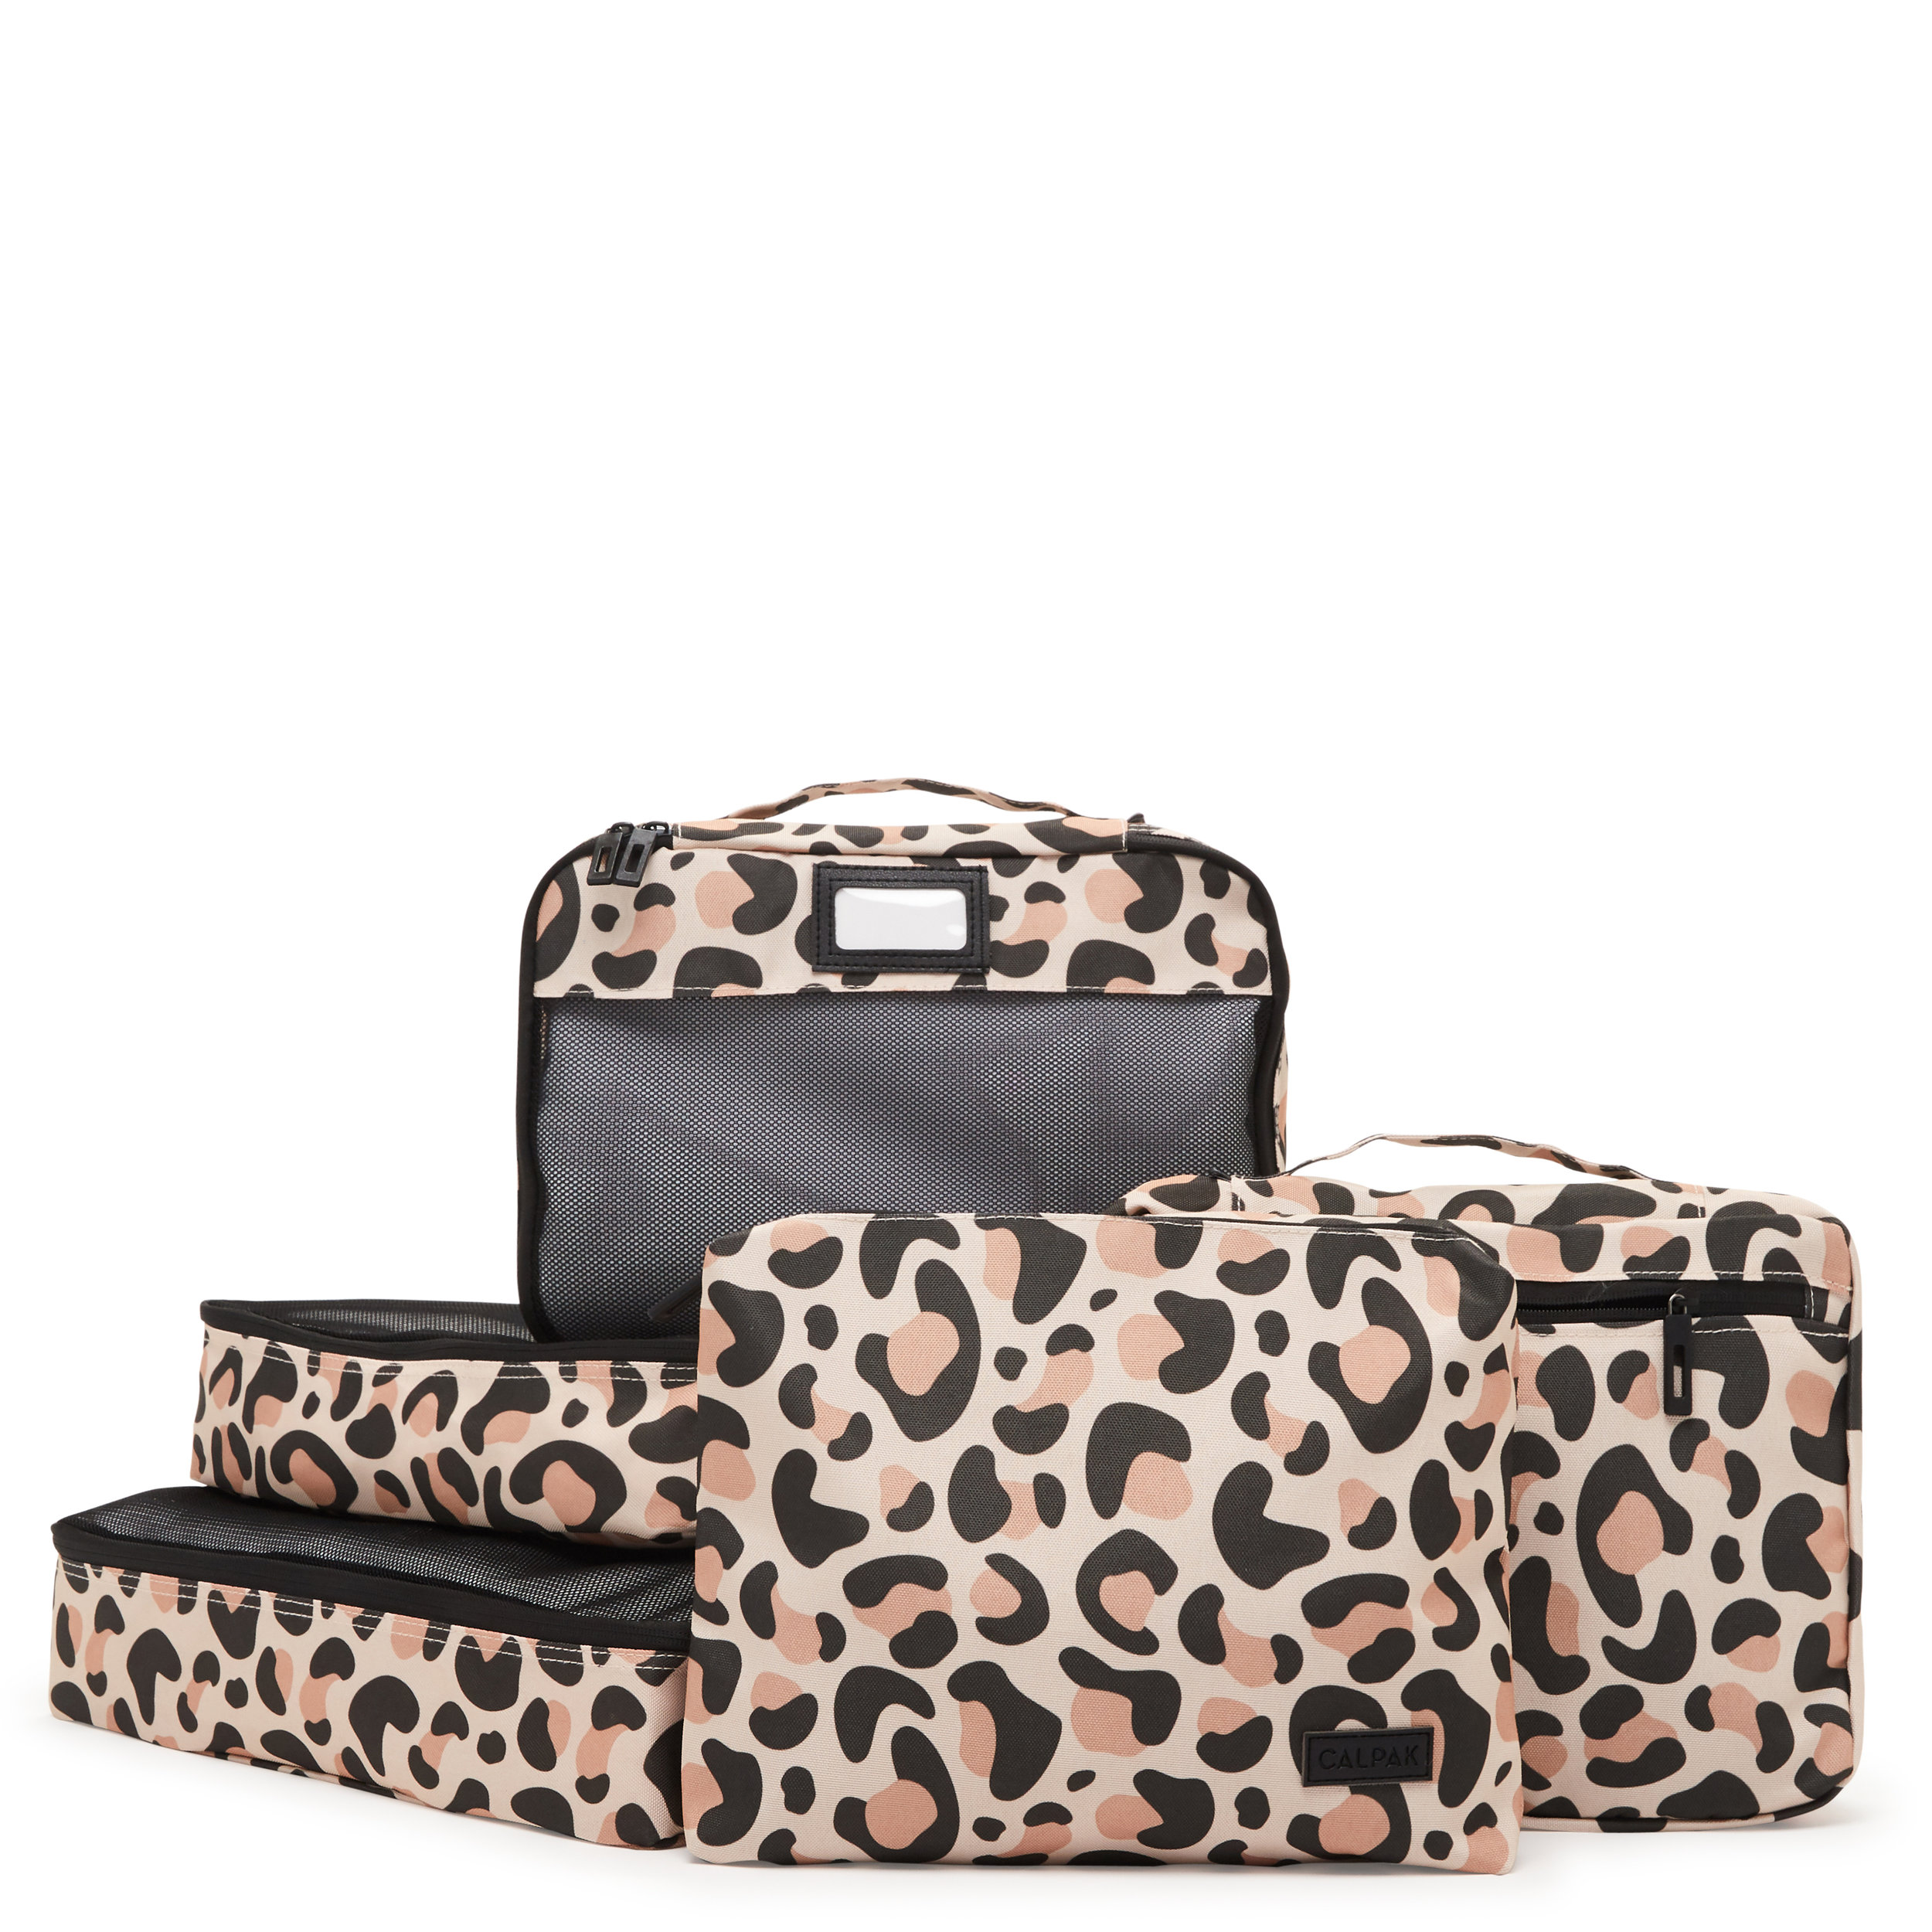 Packing Cubes - Leopard - 5 Piece Set -